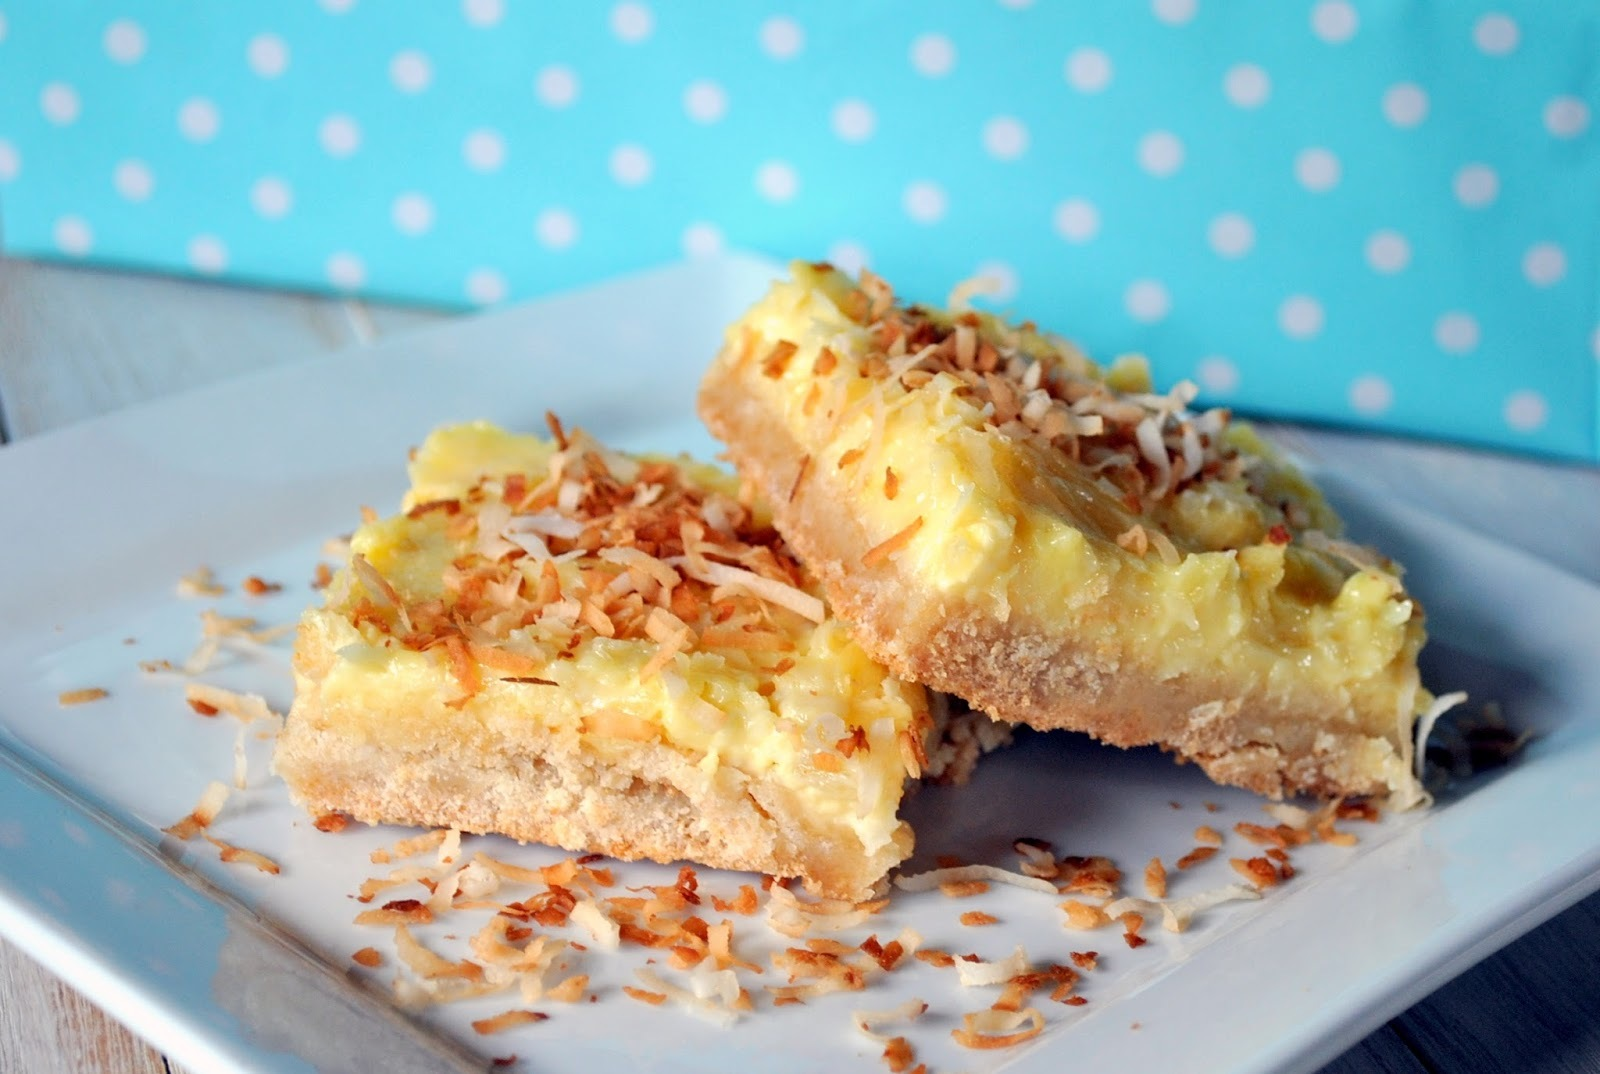 Piña Colada Cookie Bars (Barrinhas de Cookie de Piña Colada)